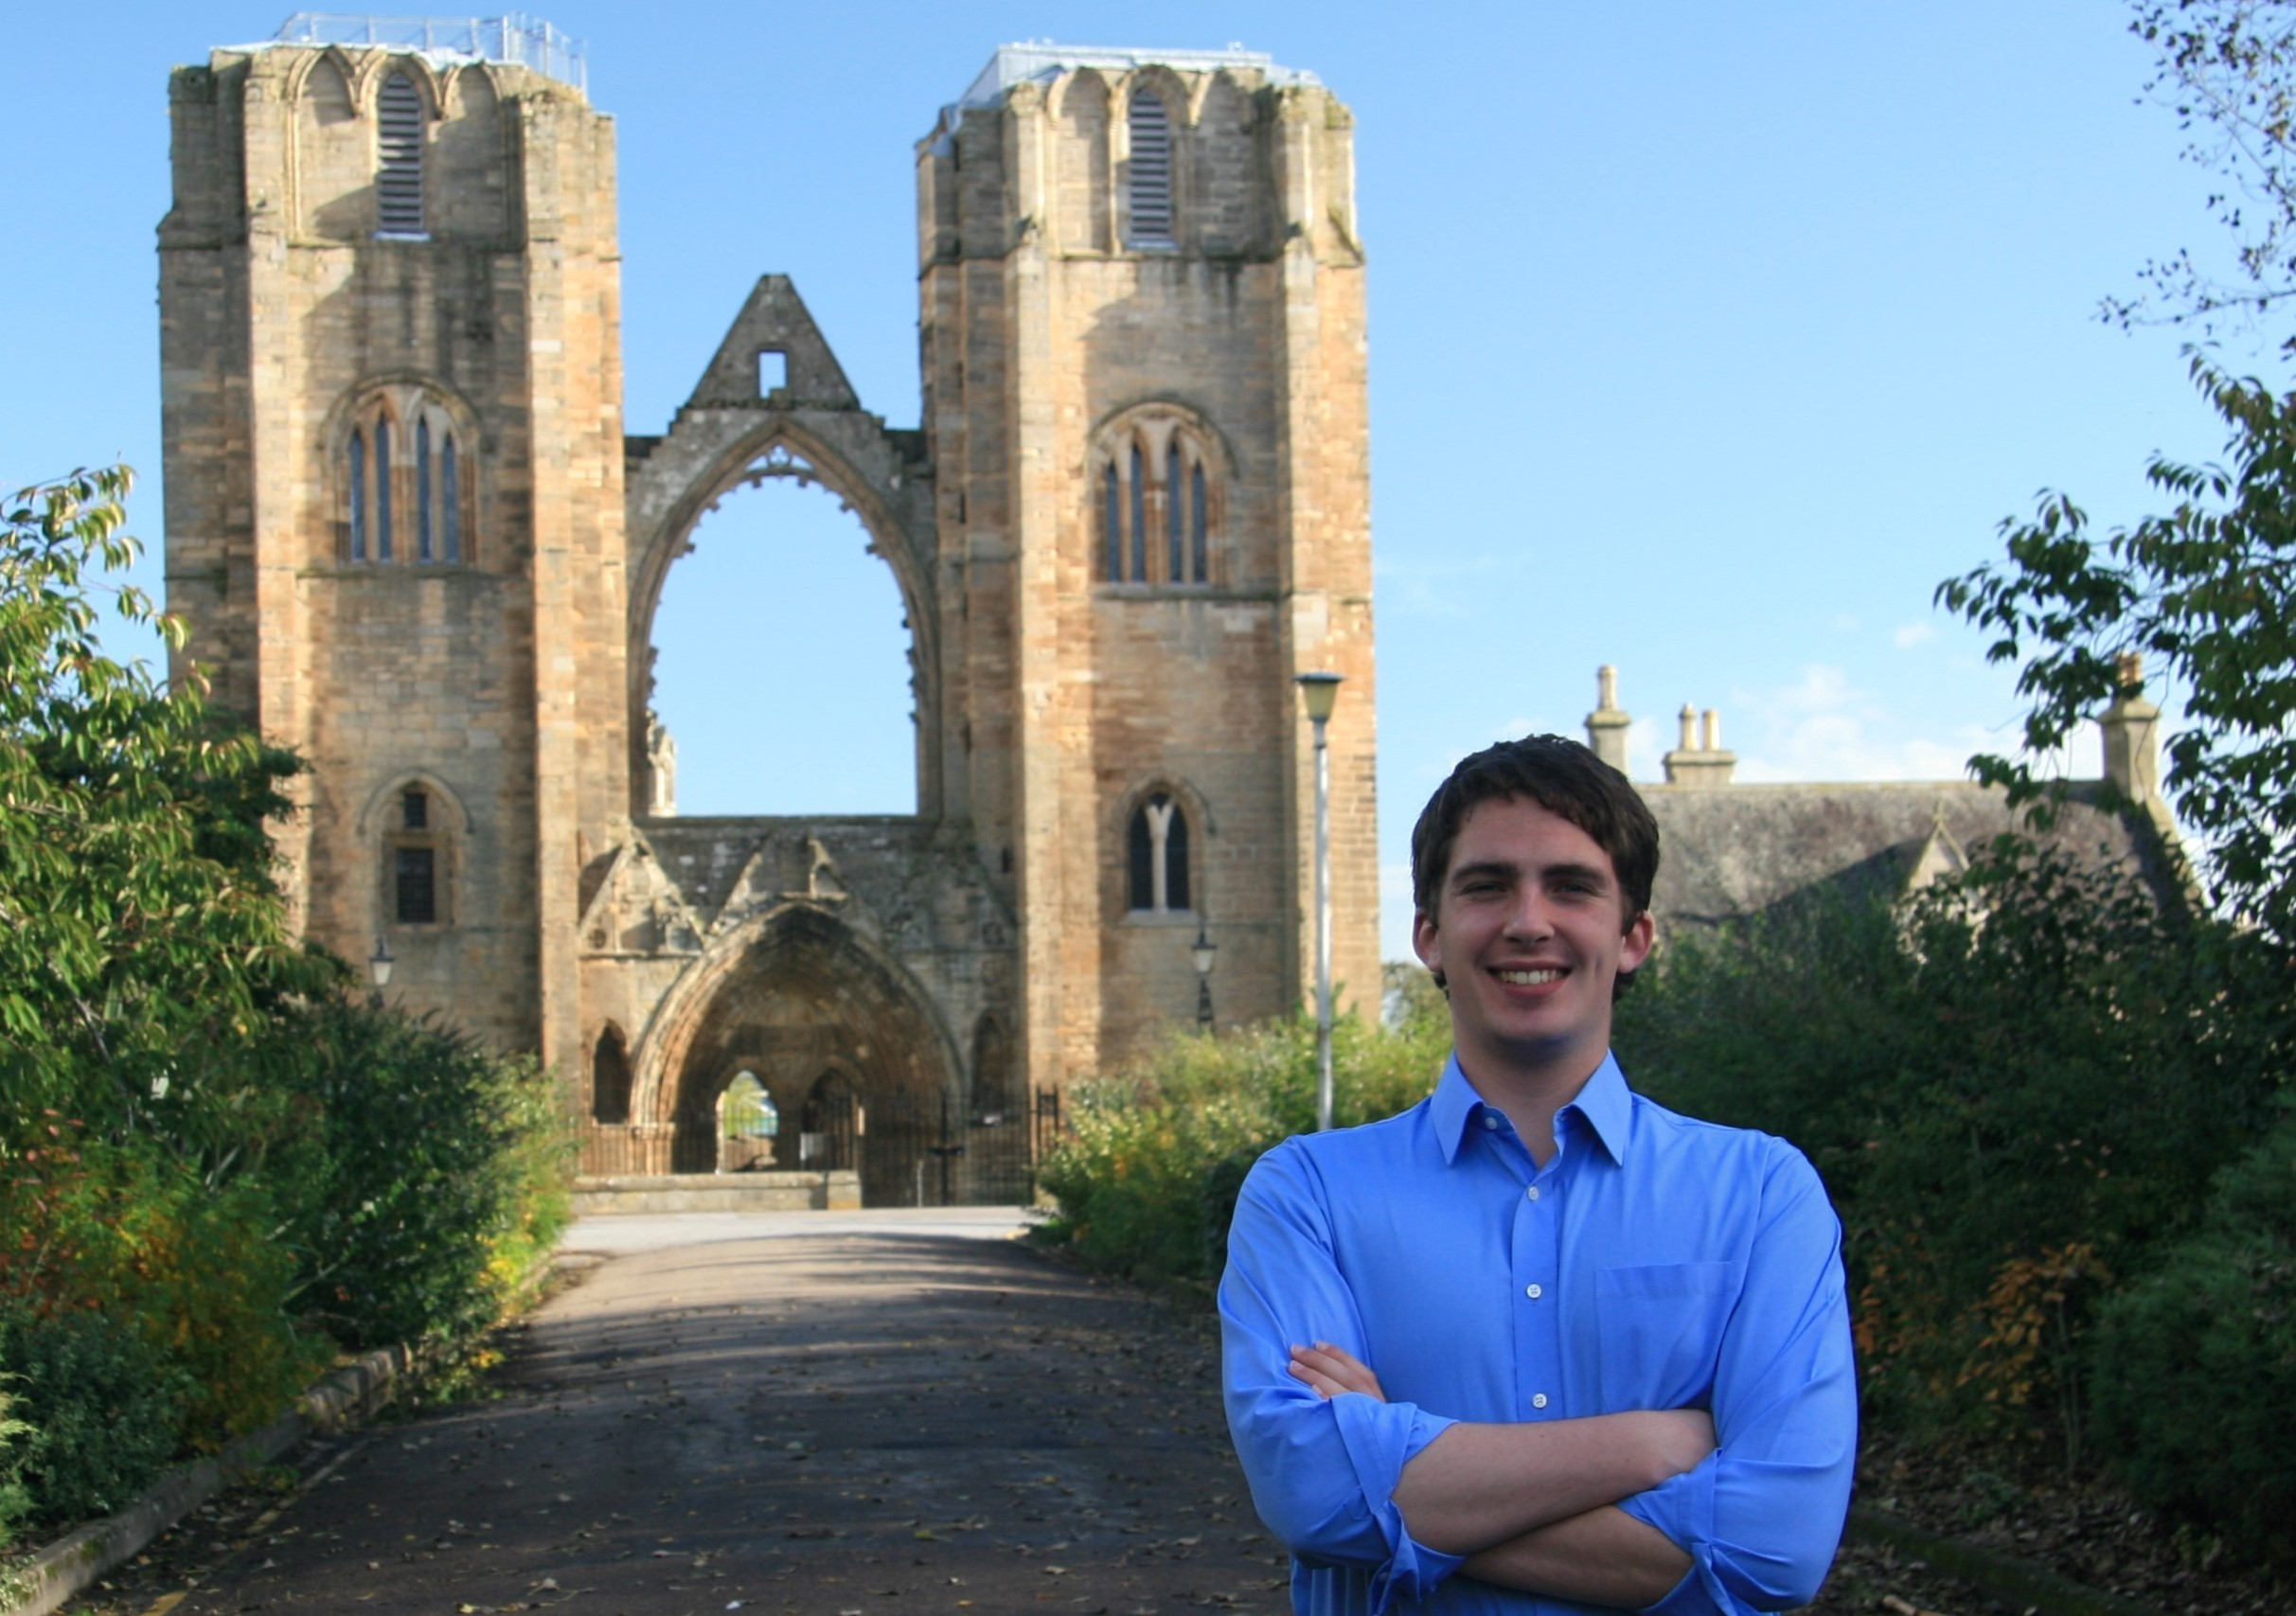 19-year-old Alex Griffiths could become one of the youngest councillors in Scotland